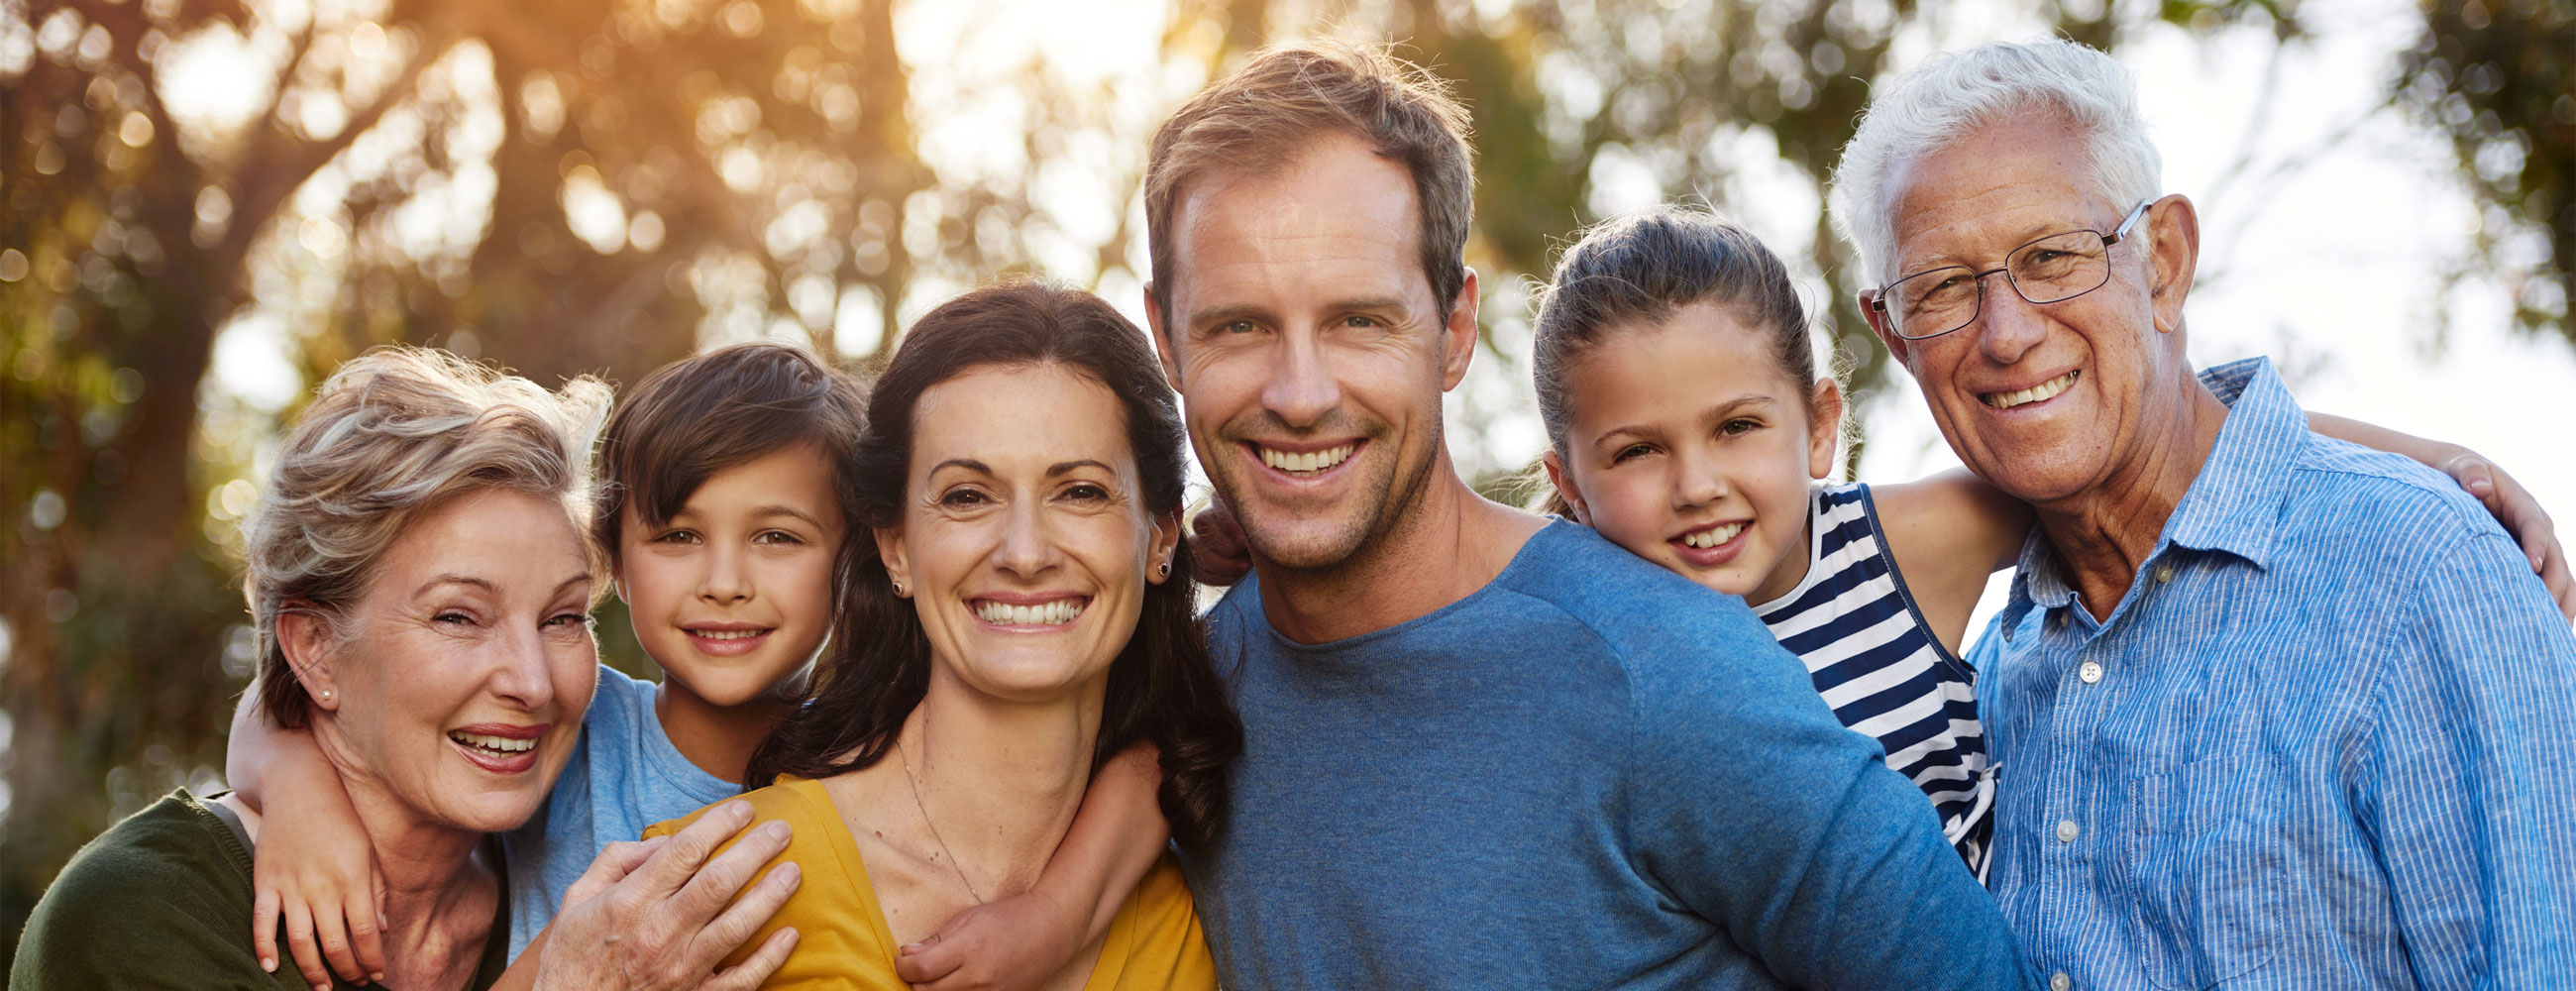 Complete primary care services for your whole family at Hamblen Primary Care.